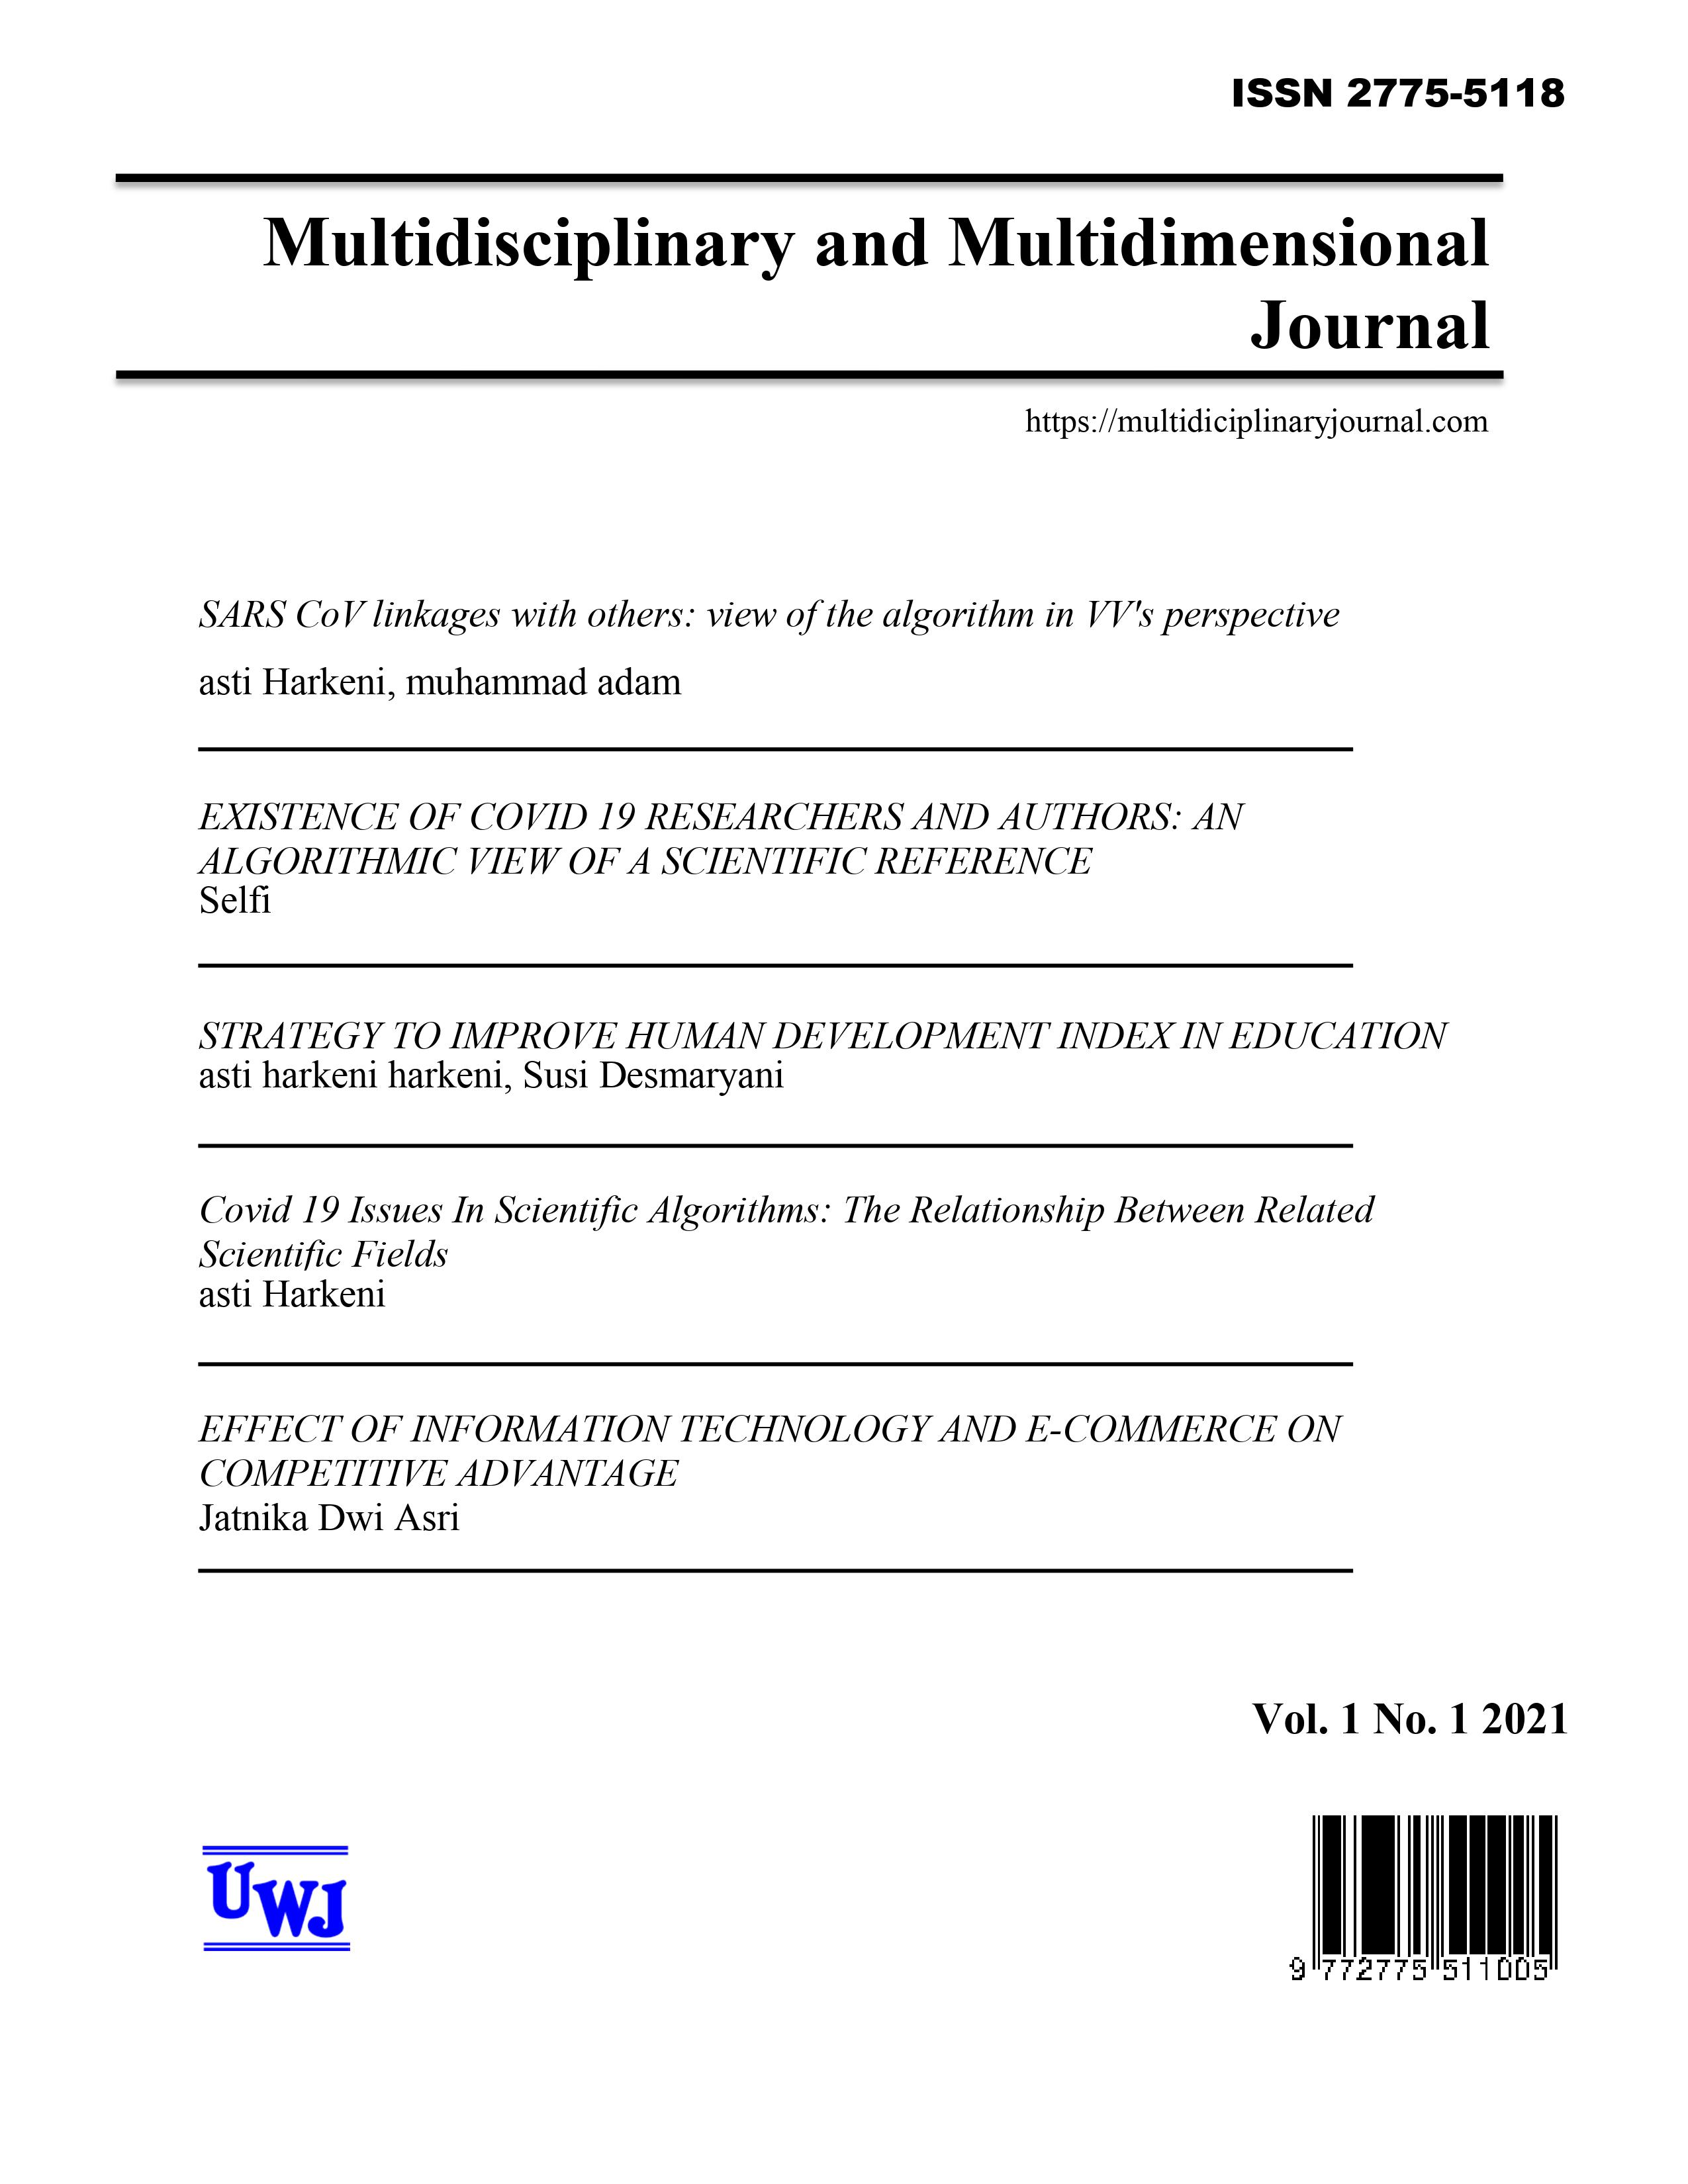 MULTIDICIPLINARY AND MULTIDIMENTIAL JOURNAL  Social science journals are journals with a multidisciplinary and multidimensional approach that makes it easy for researchers to publish from various scientific sources. The publication of this journal is available in the Open Access journal and is free of charge. for submission of manuscripts can be via Email Admin.  open access journal